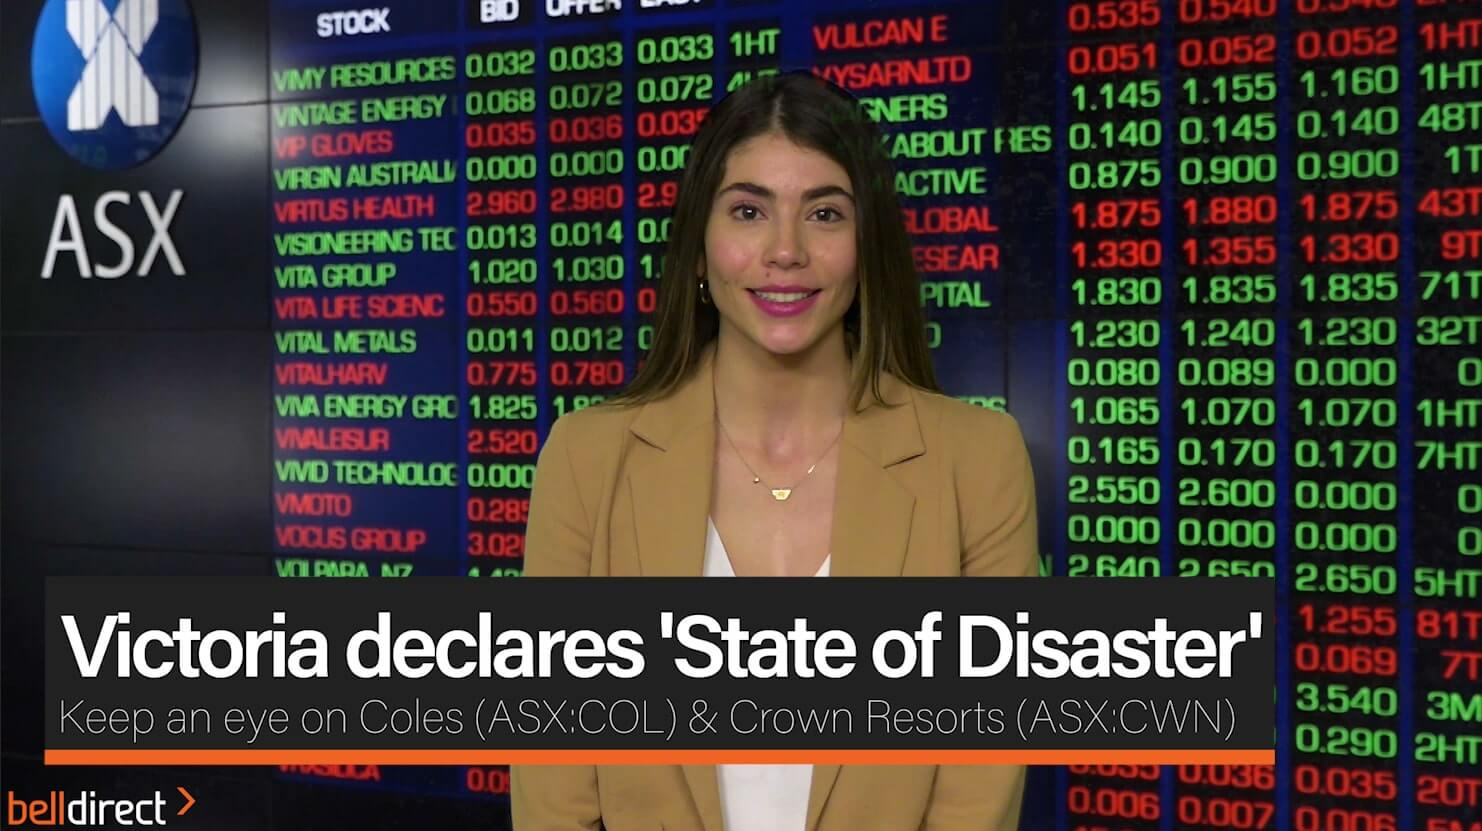 Victoria declares 'State of Disaster'